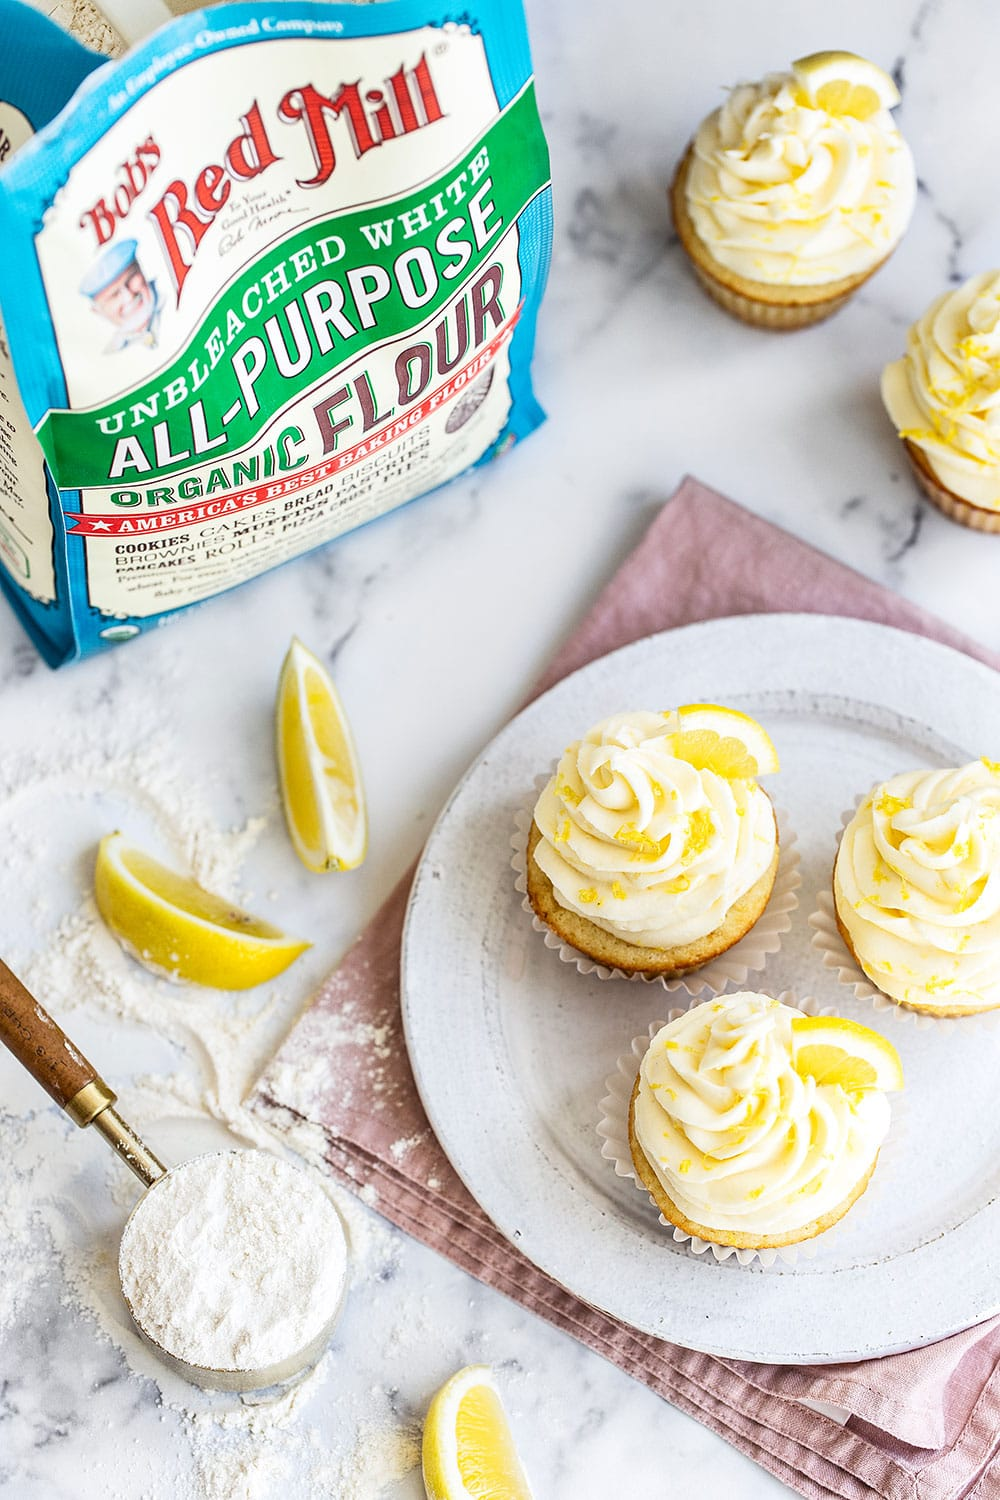 Lemon cupcakes with flour and ingredients on counter